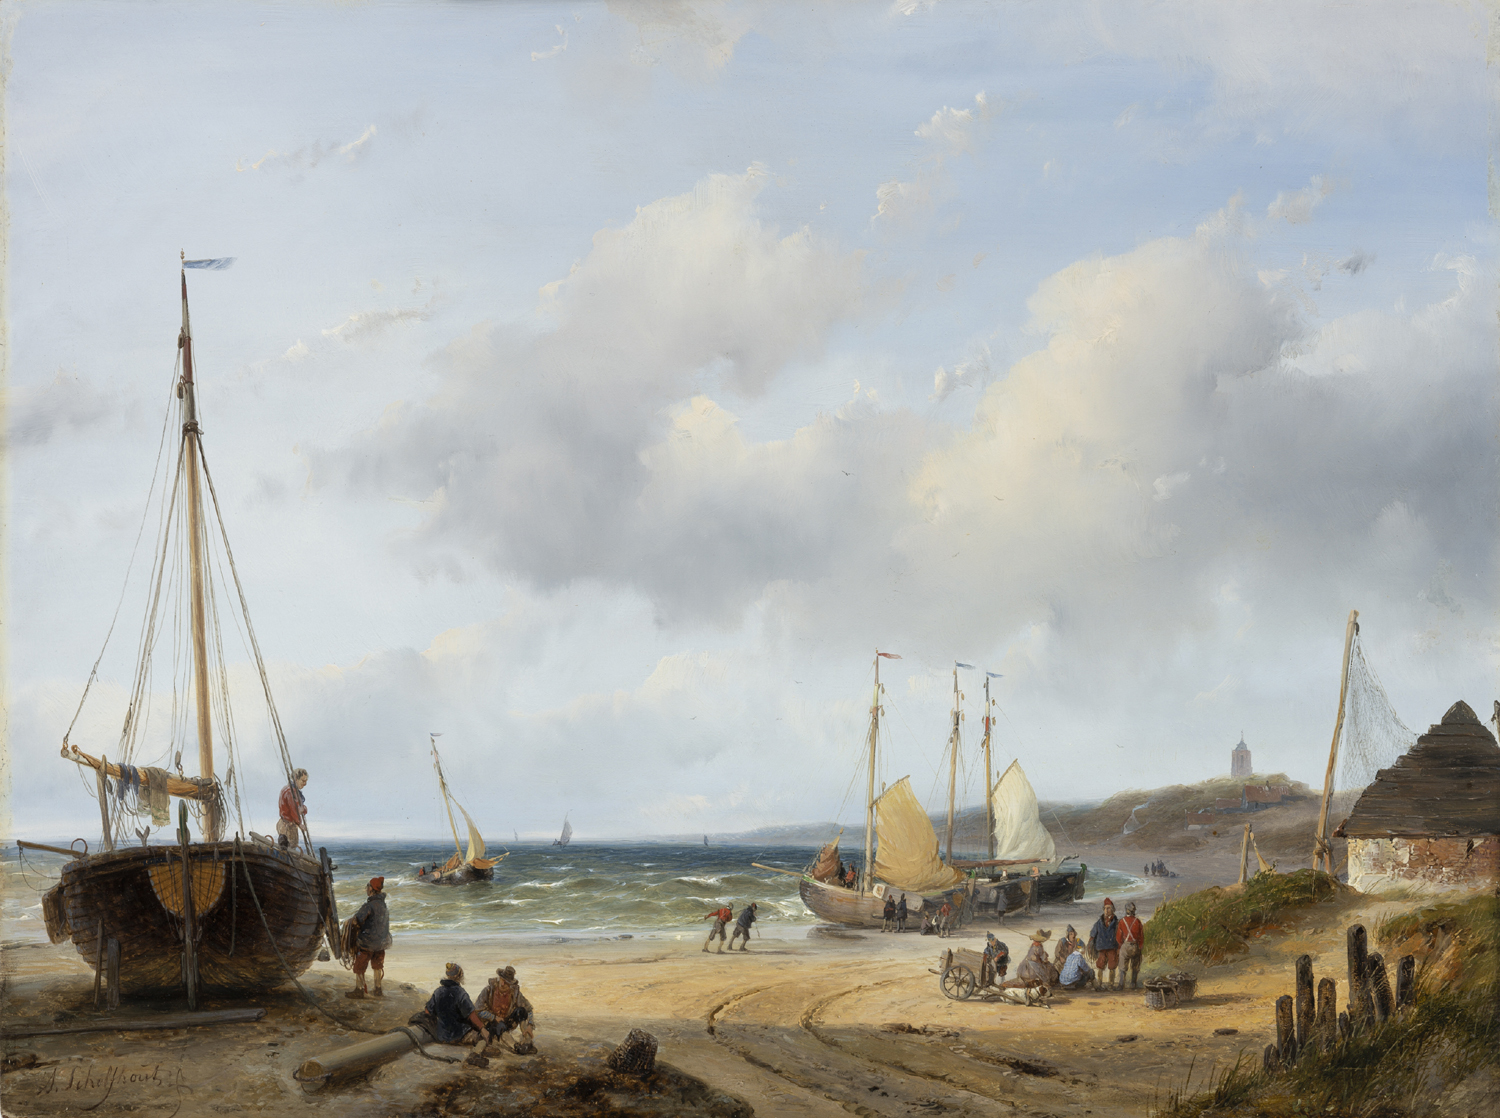 Andreas Schelfhout | A beach scene with fishing boats and figures | Kunsthandel Bies | Bies Gallery